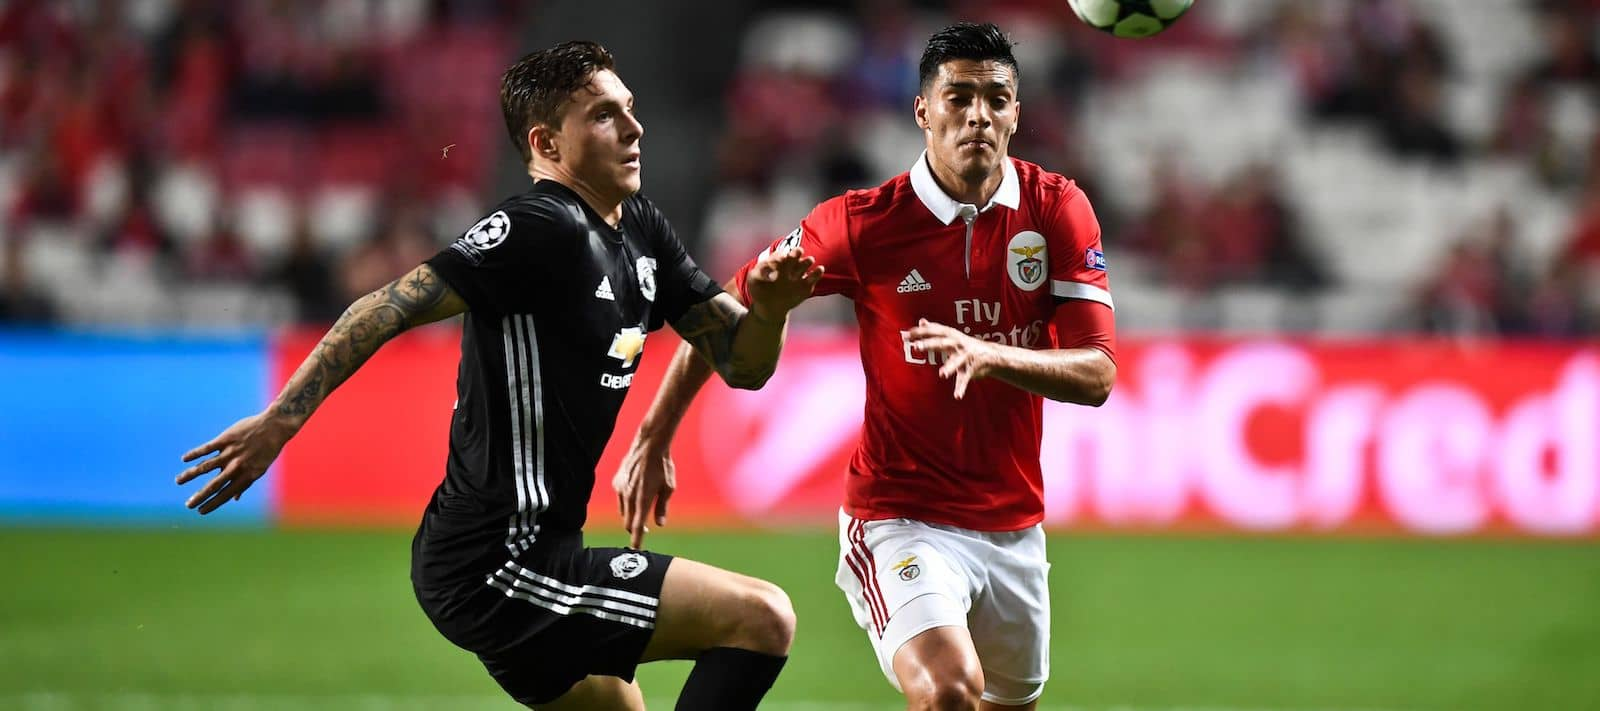 Manchester United fans delighted with Victor Lindelof's performance against Italy